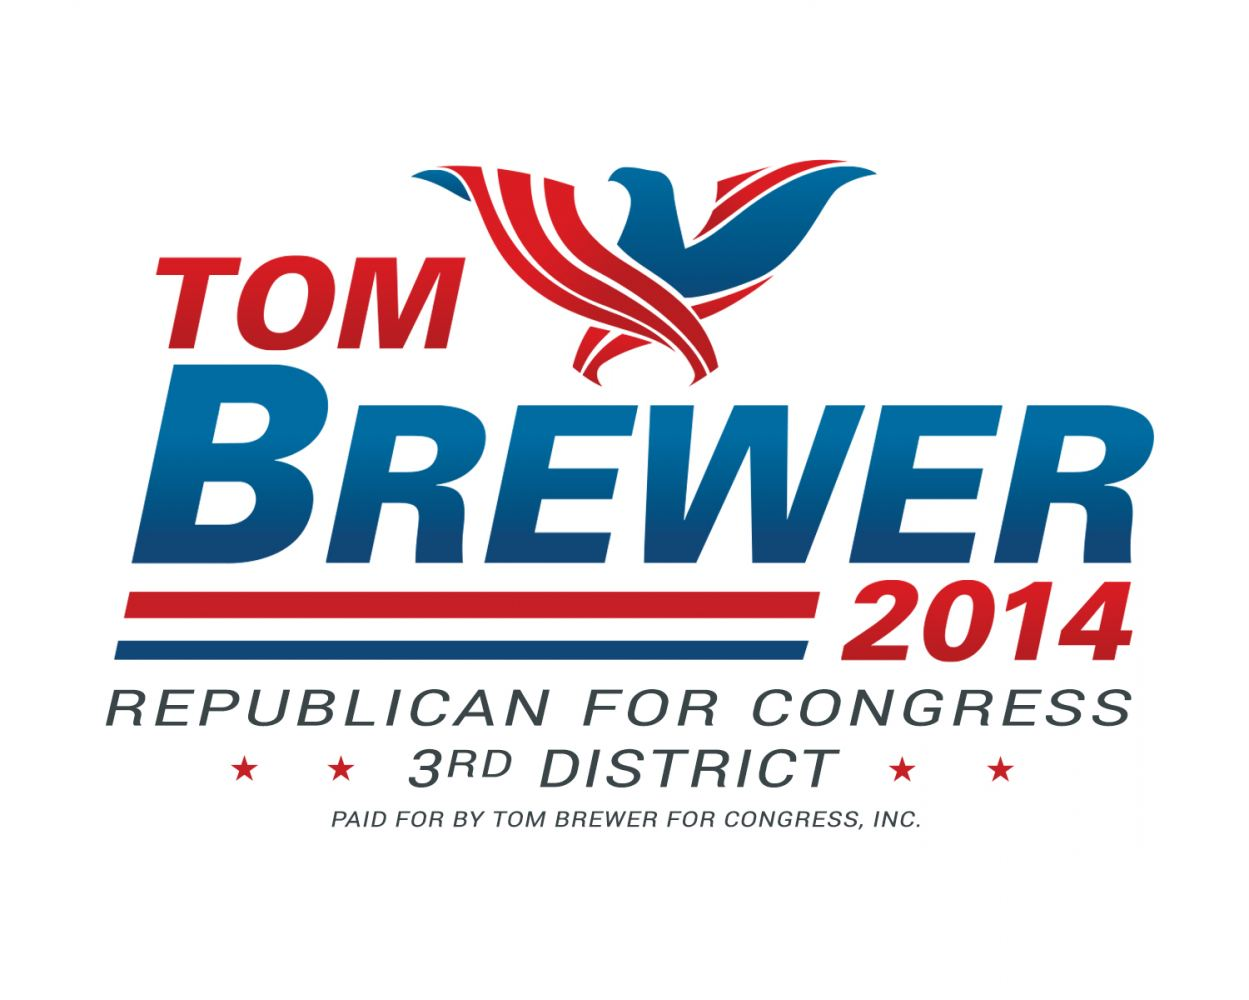 Tom Brewer for Congress